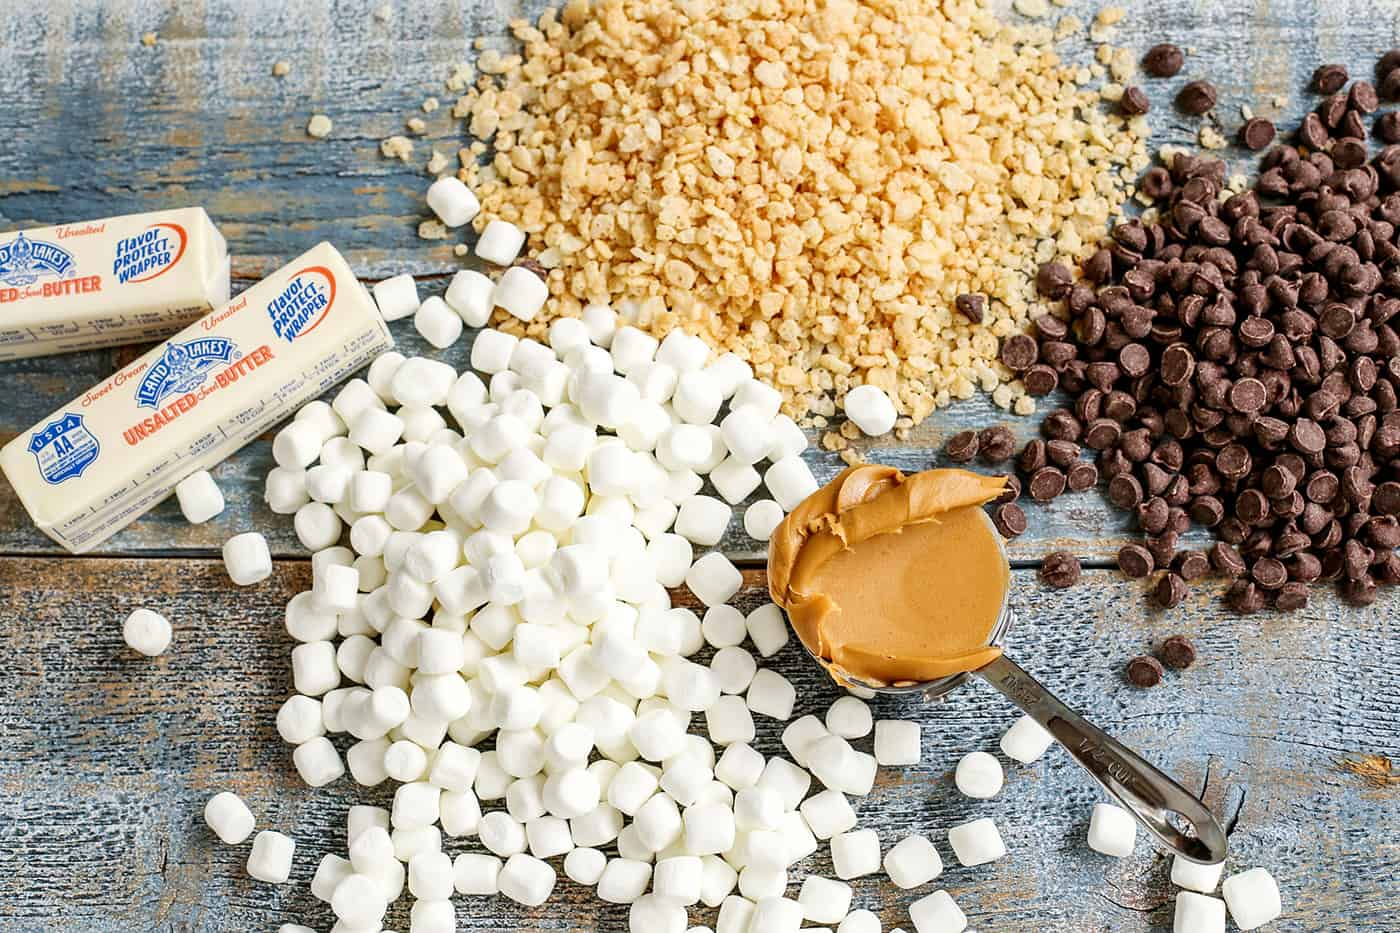 The ingredients needed for extra-marshmallow chocolate peanut butter rice krispies bars